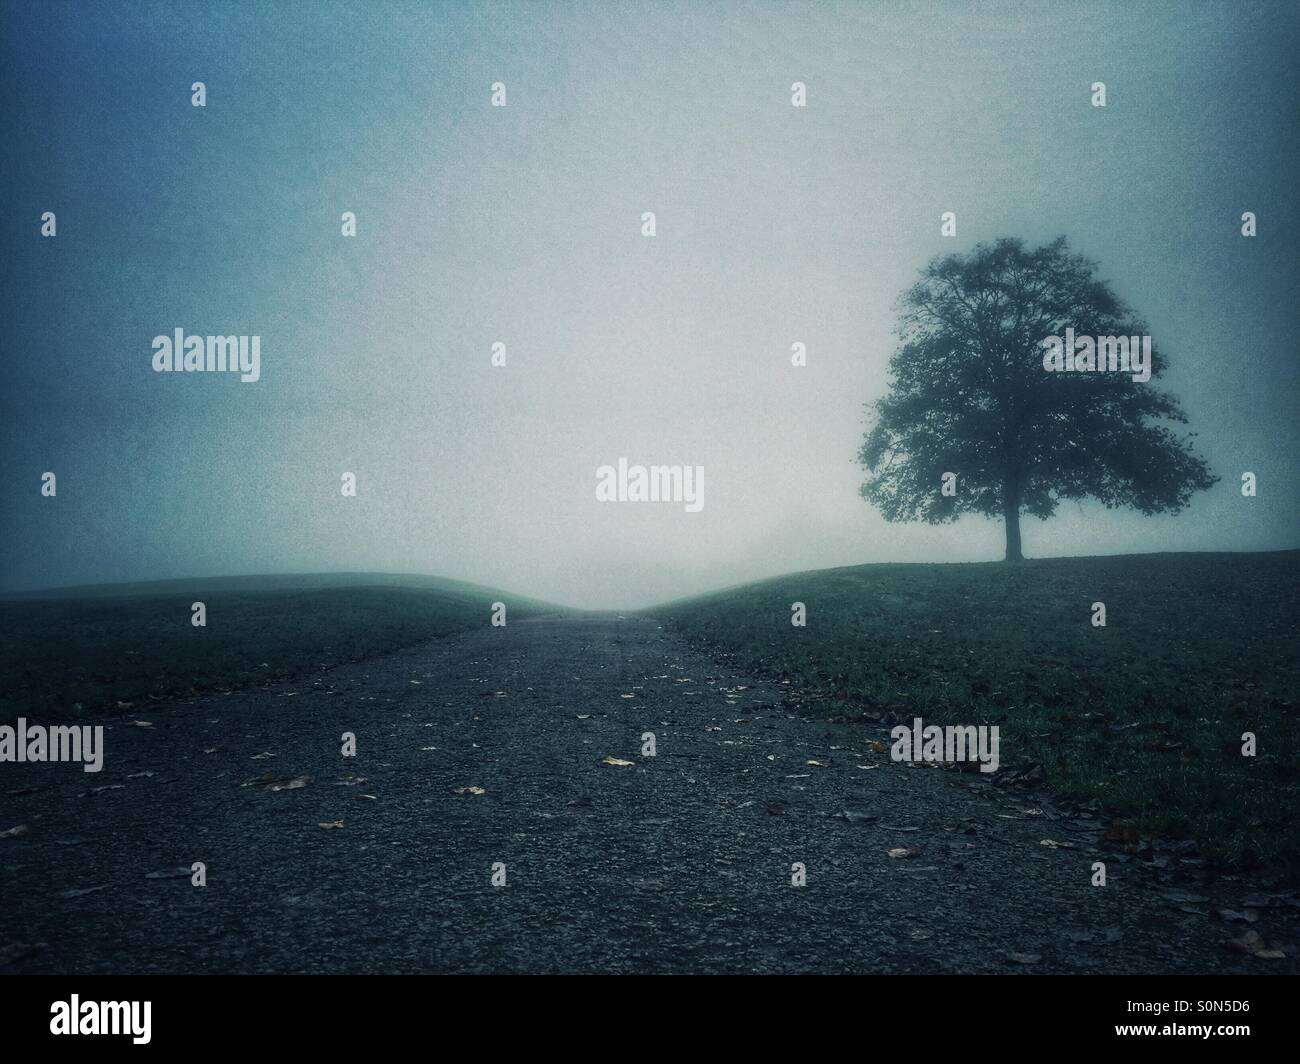 Arbre sur la colline Photo Stock